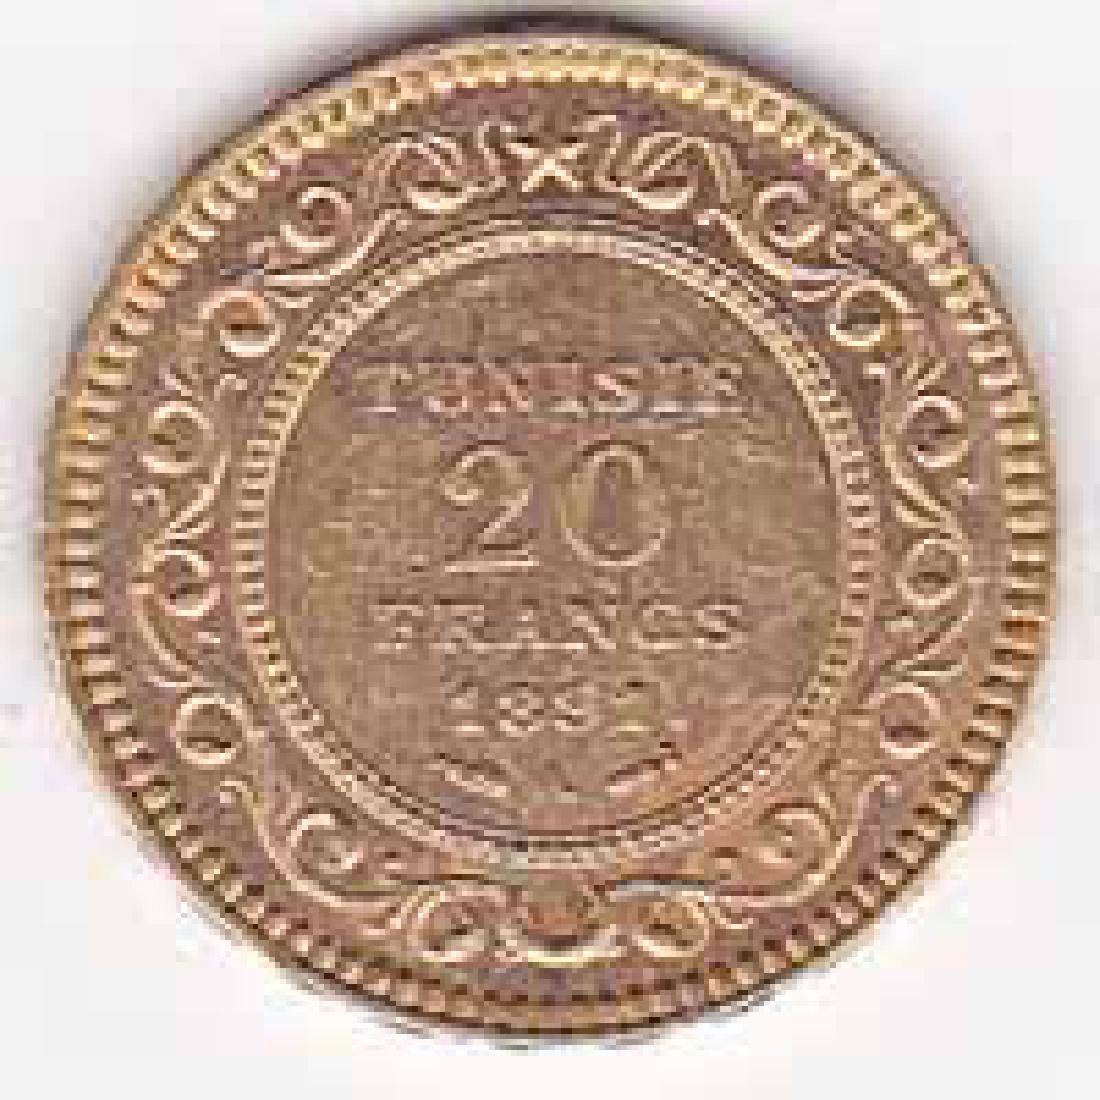 Tunisia 20 francs gold 1891-1902